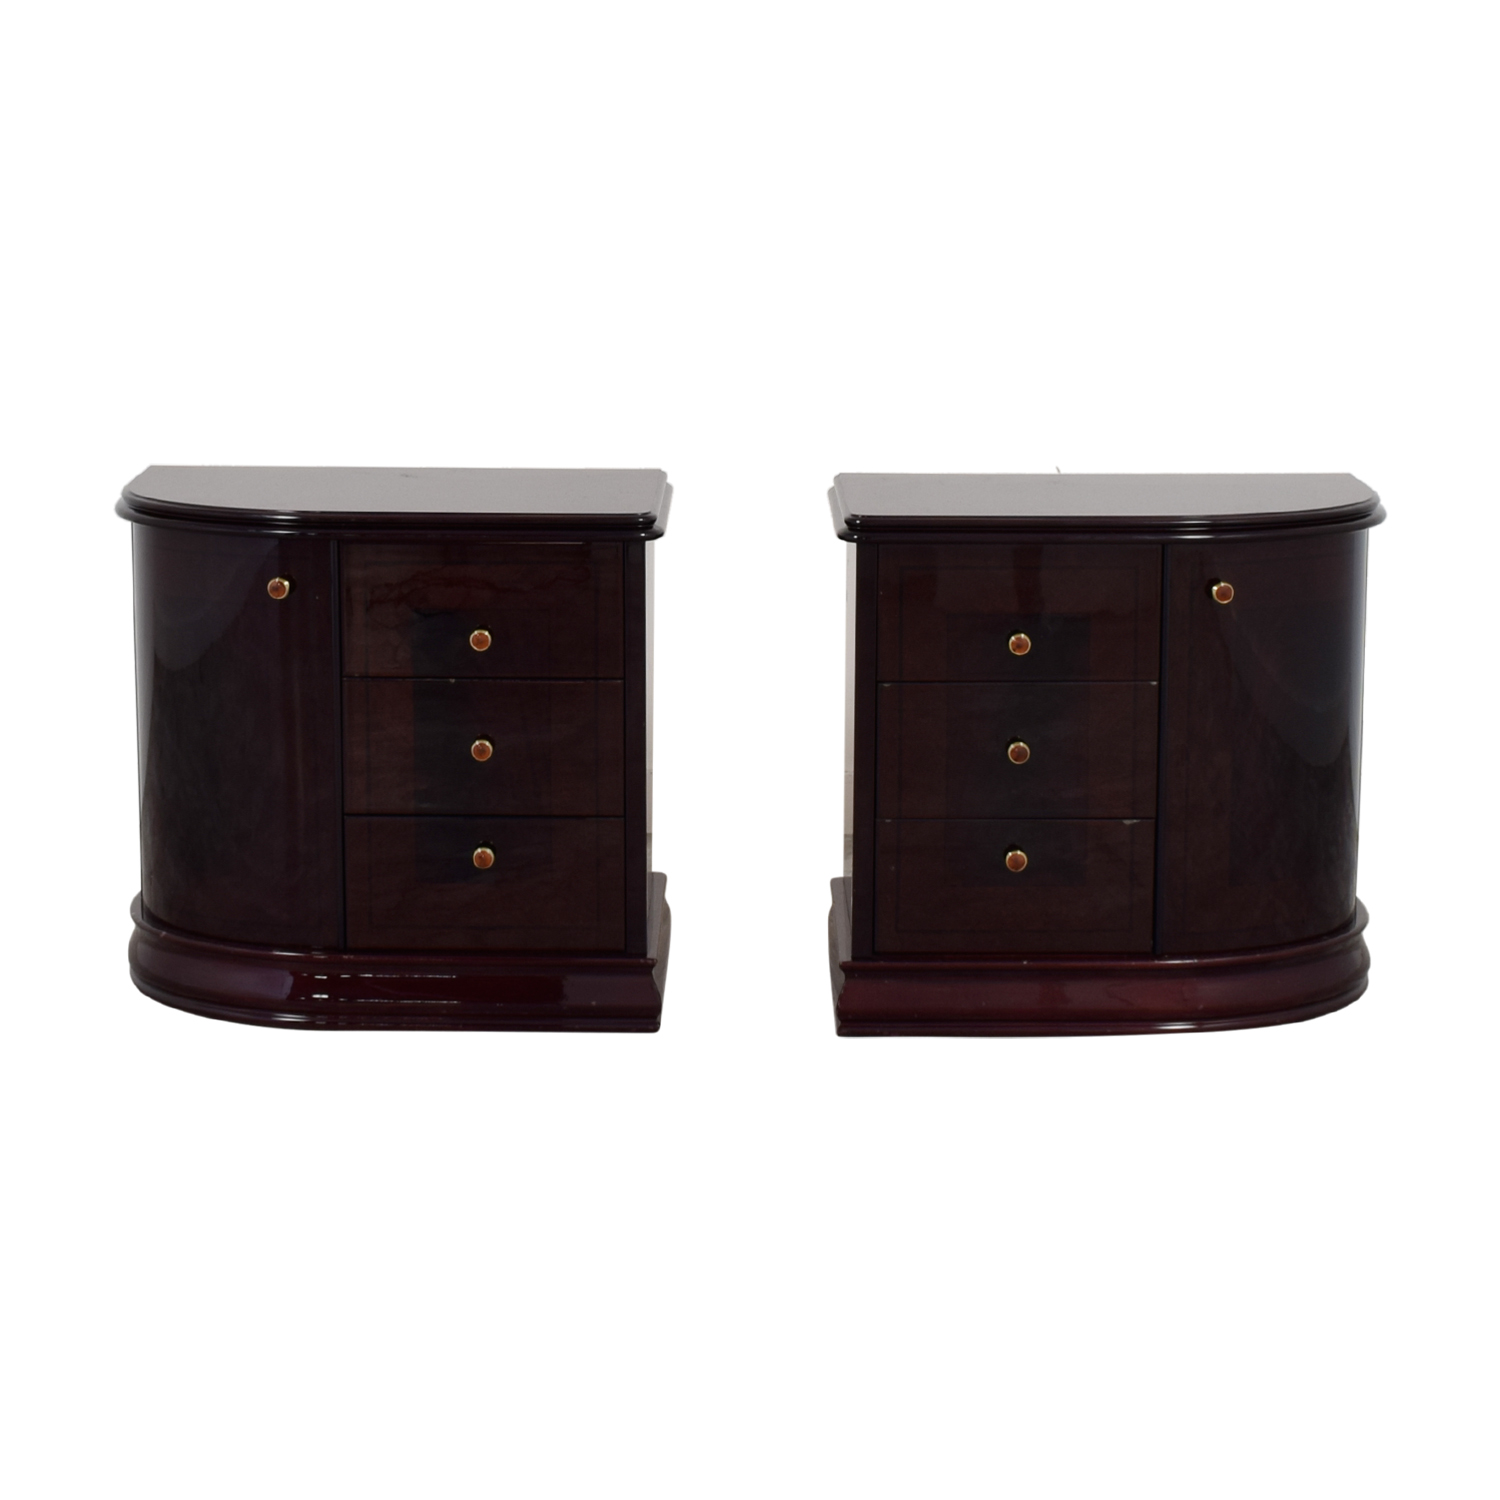 Curvo Camere Curvo Camere Brown Nightstands used